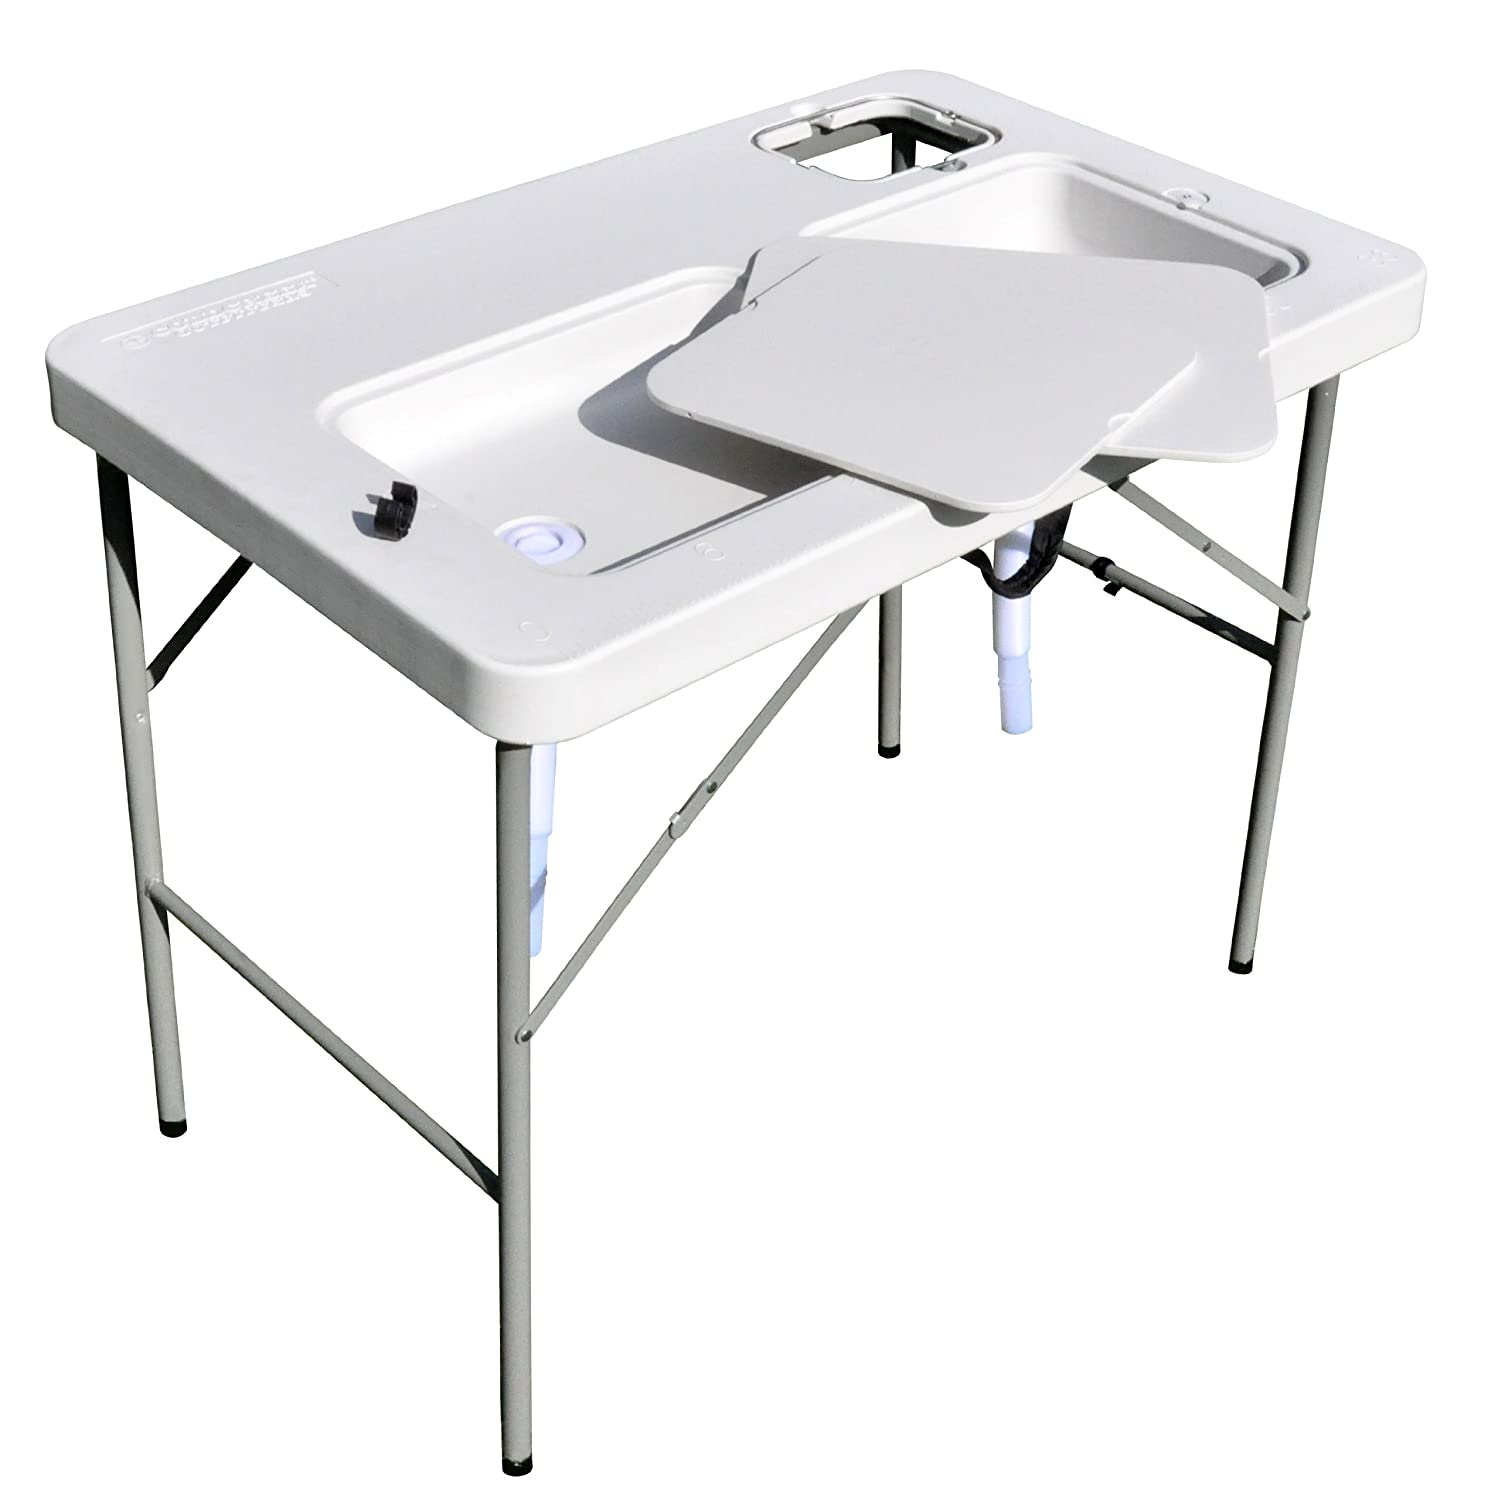 3 best portable fish cleaning tables fins catcher for Fish and game table